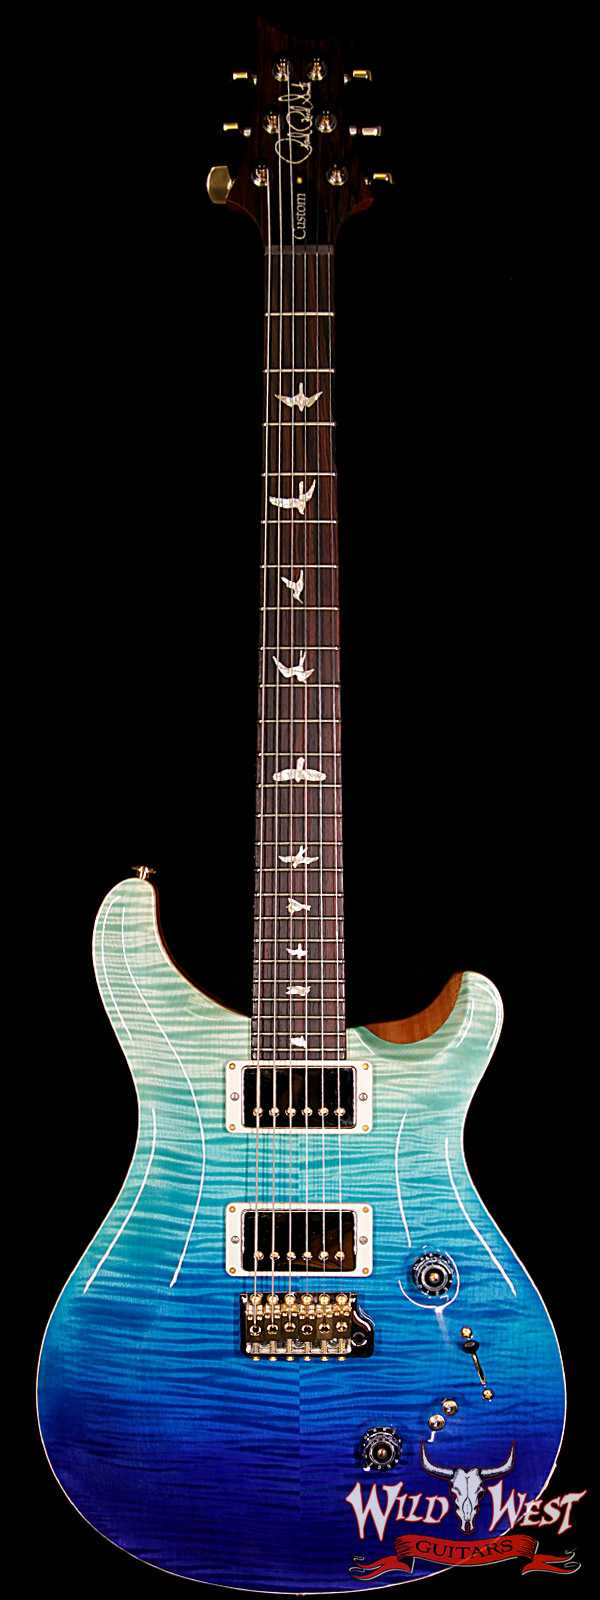 PRS Wood Library 10 Top Custom 24-08 Flame Maple Top Cocobolo Fingerboard Blue Fade